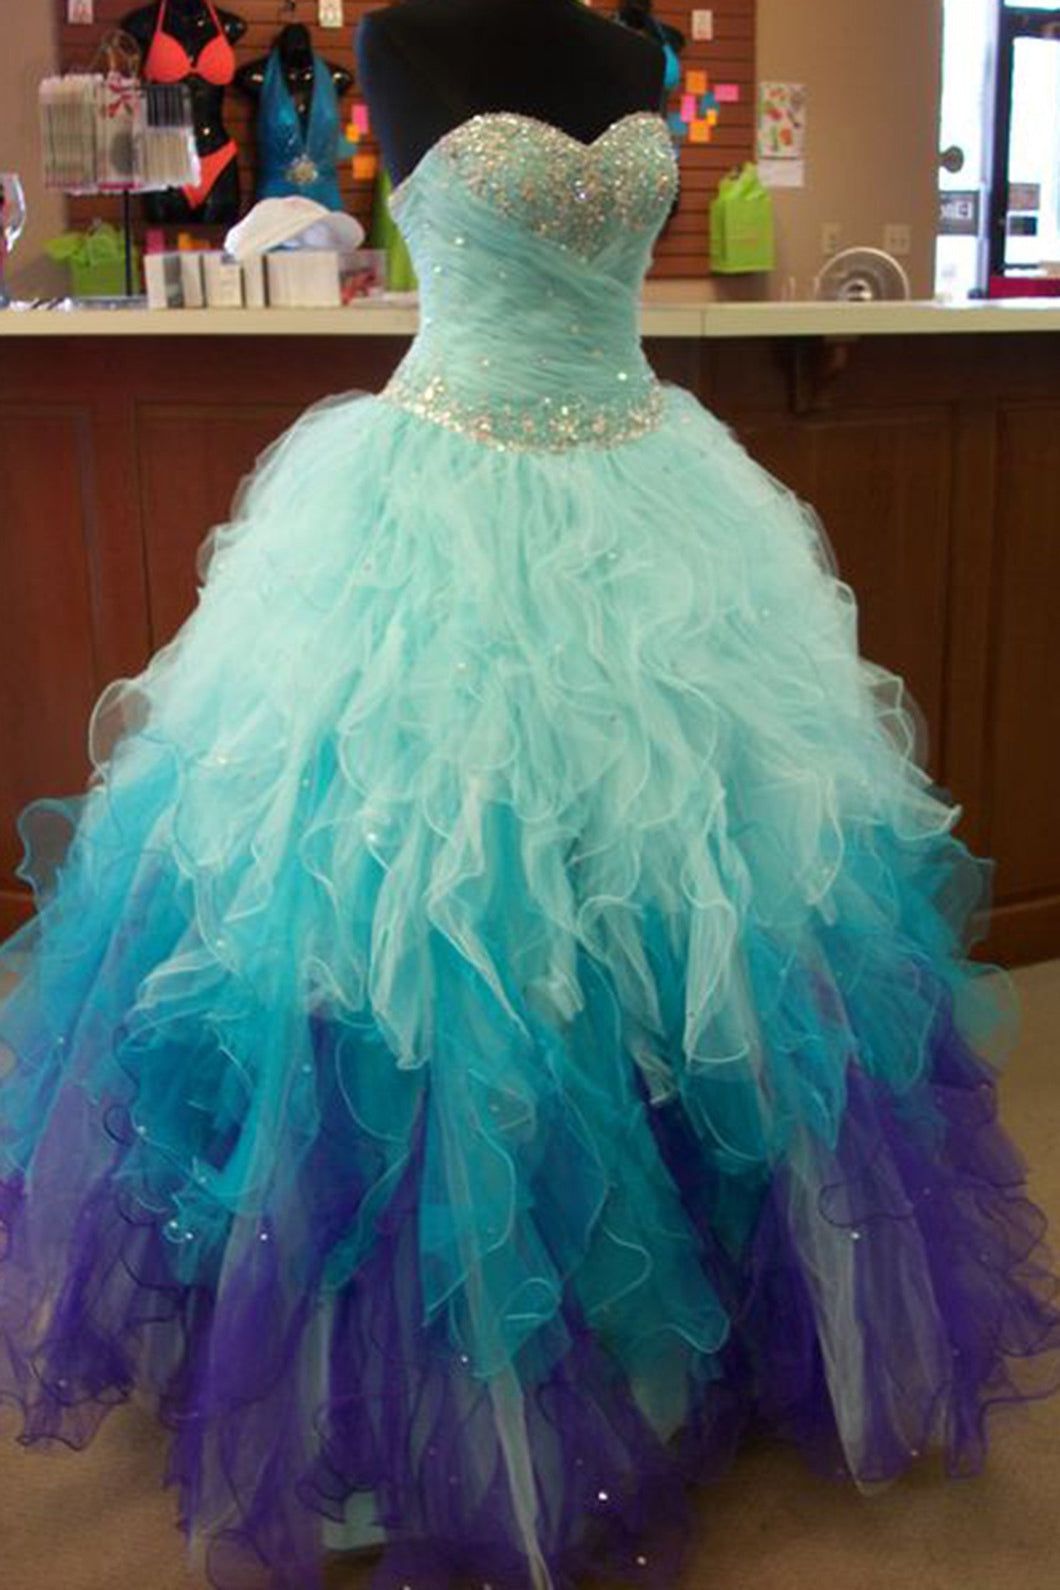 2019 Prom Dresses | Blue & purple organza sweetheart sequins A-line long prom dresses,gown dresses for teens